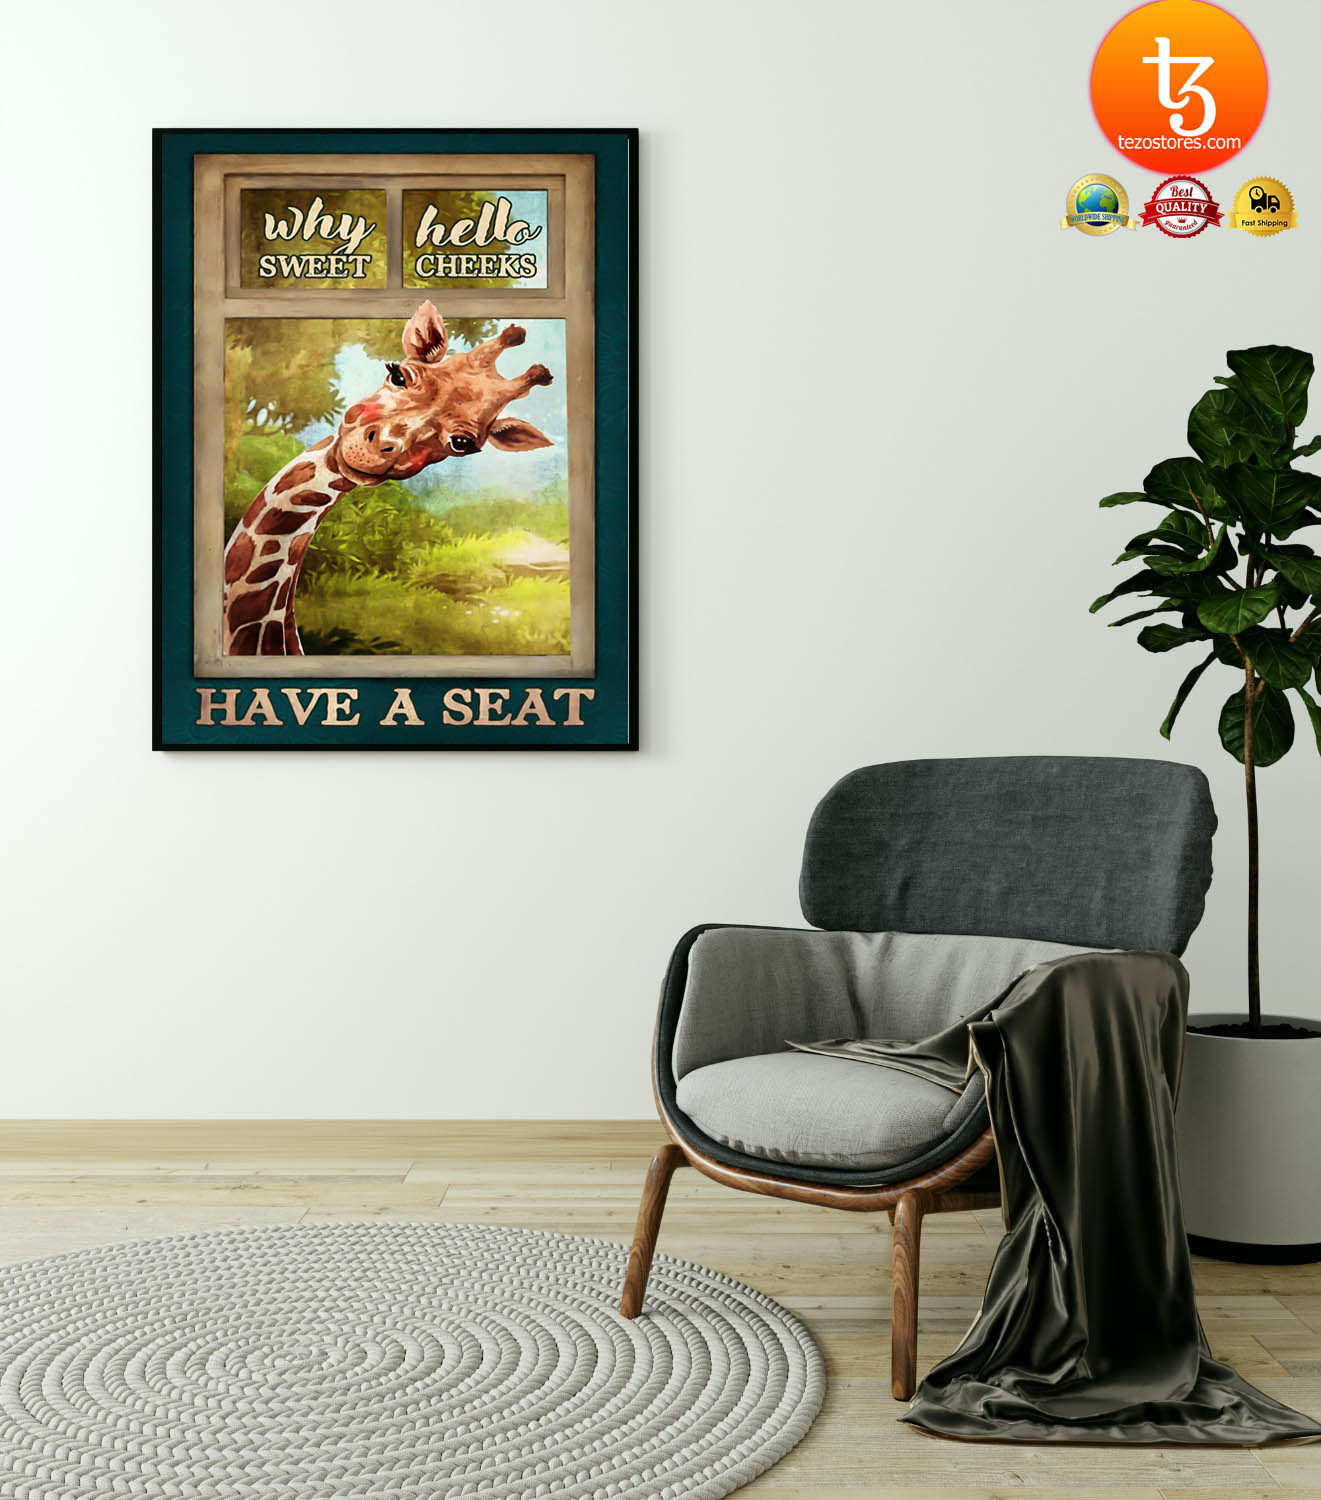 Giraffe why hello sweet cheeks have a seat poster 21